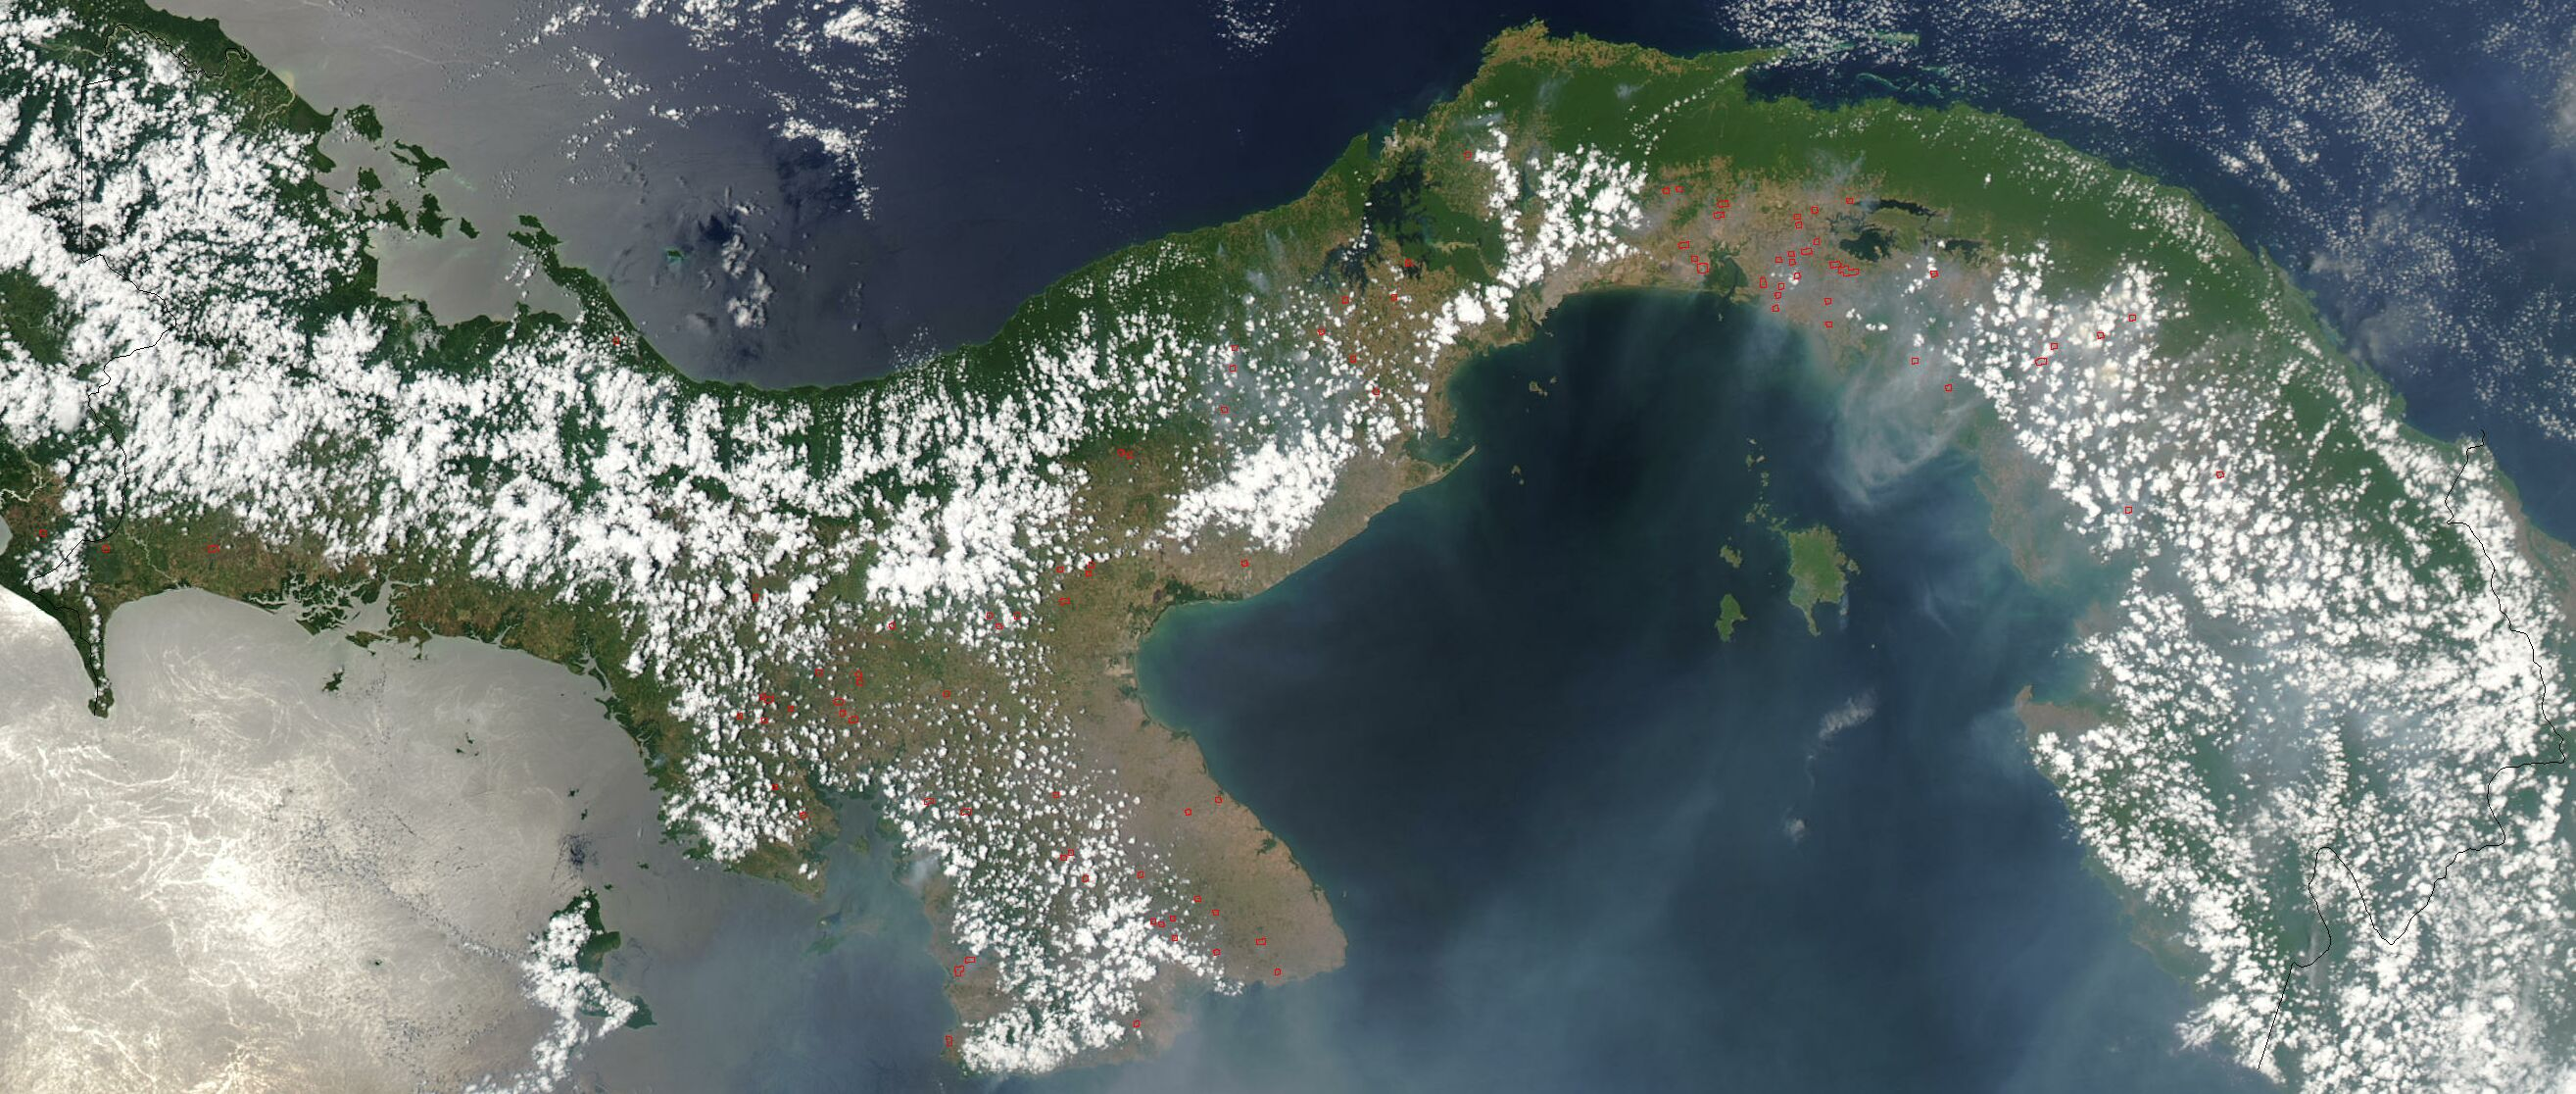 Image:Satellite image of Panama in March 2003